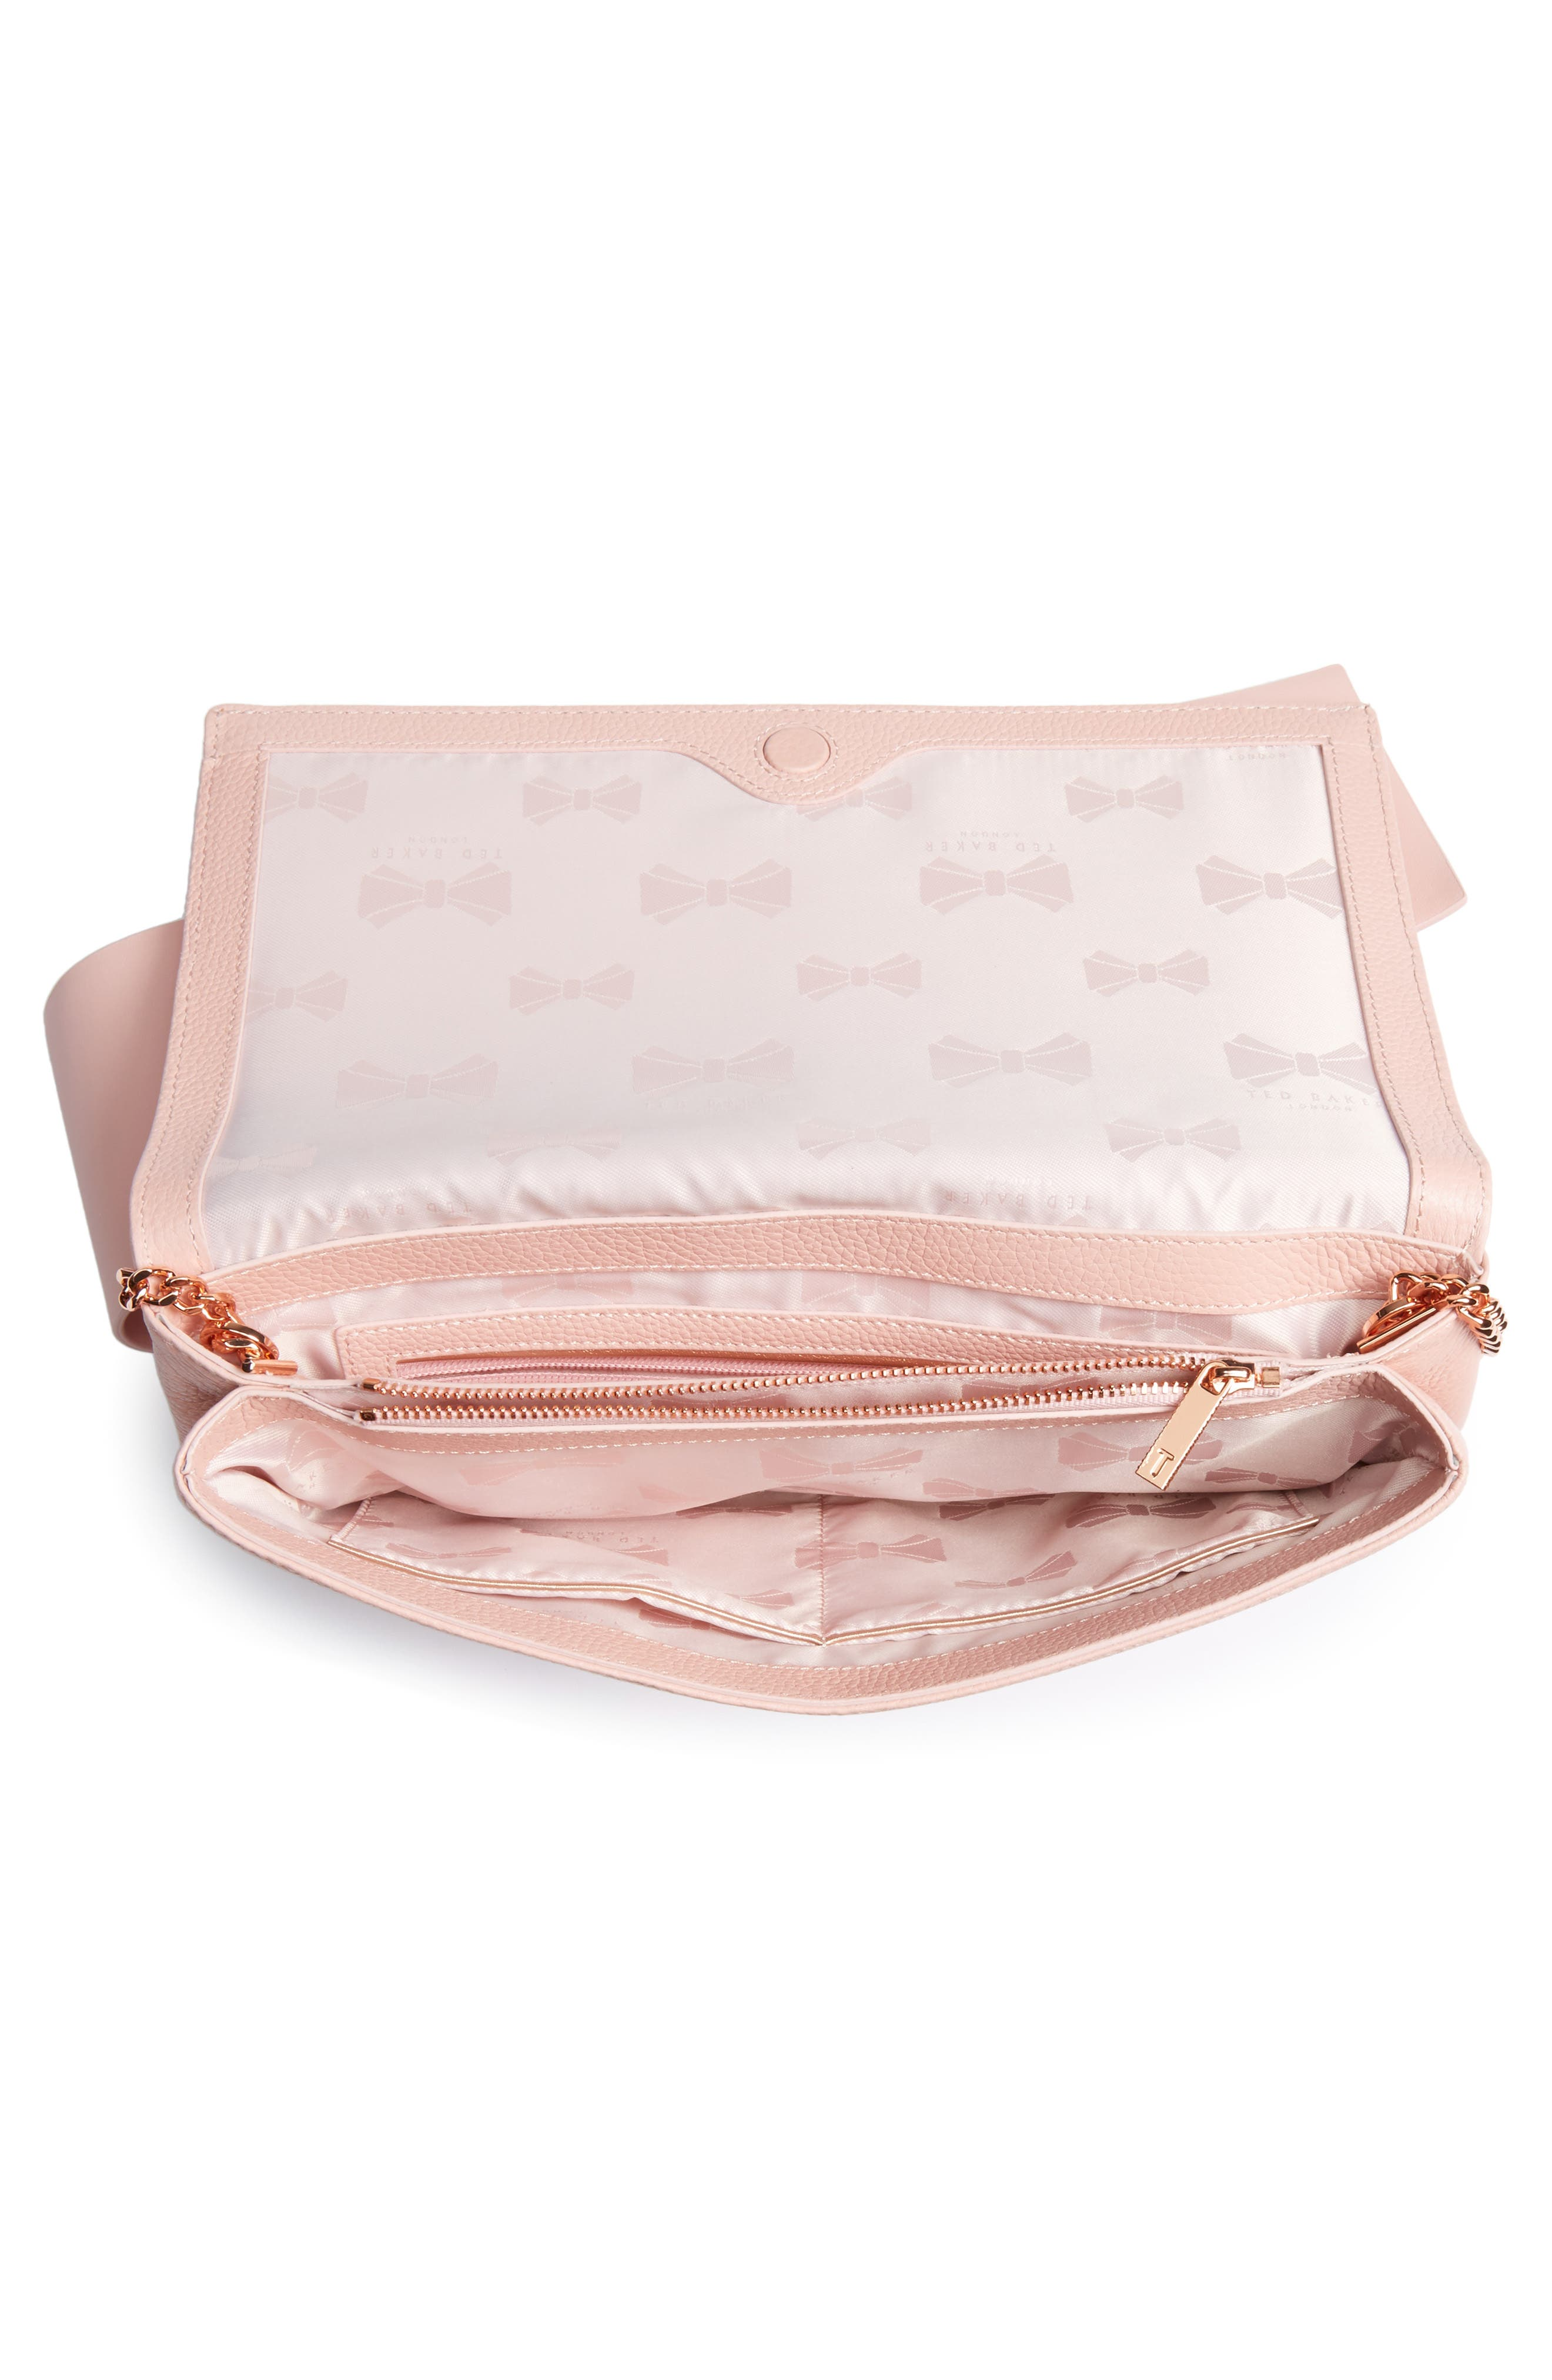 Knotted Bow Leather Clutch,                             Alternate thumbnail 4, color,                             Light Pink